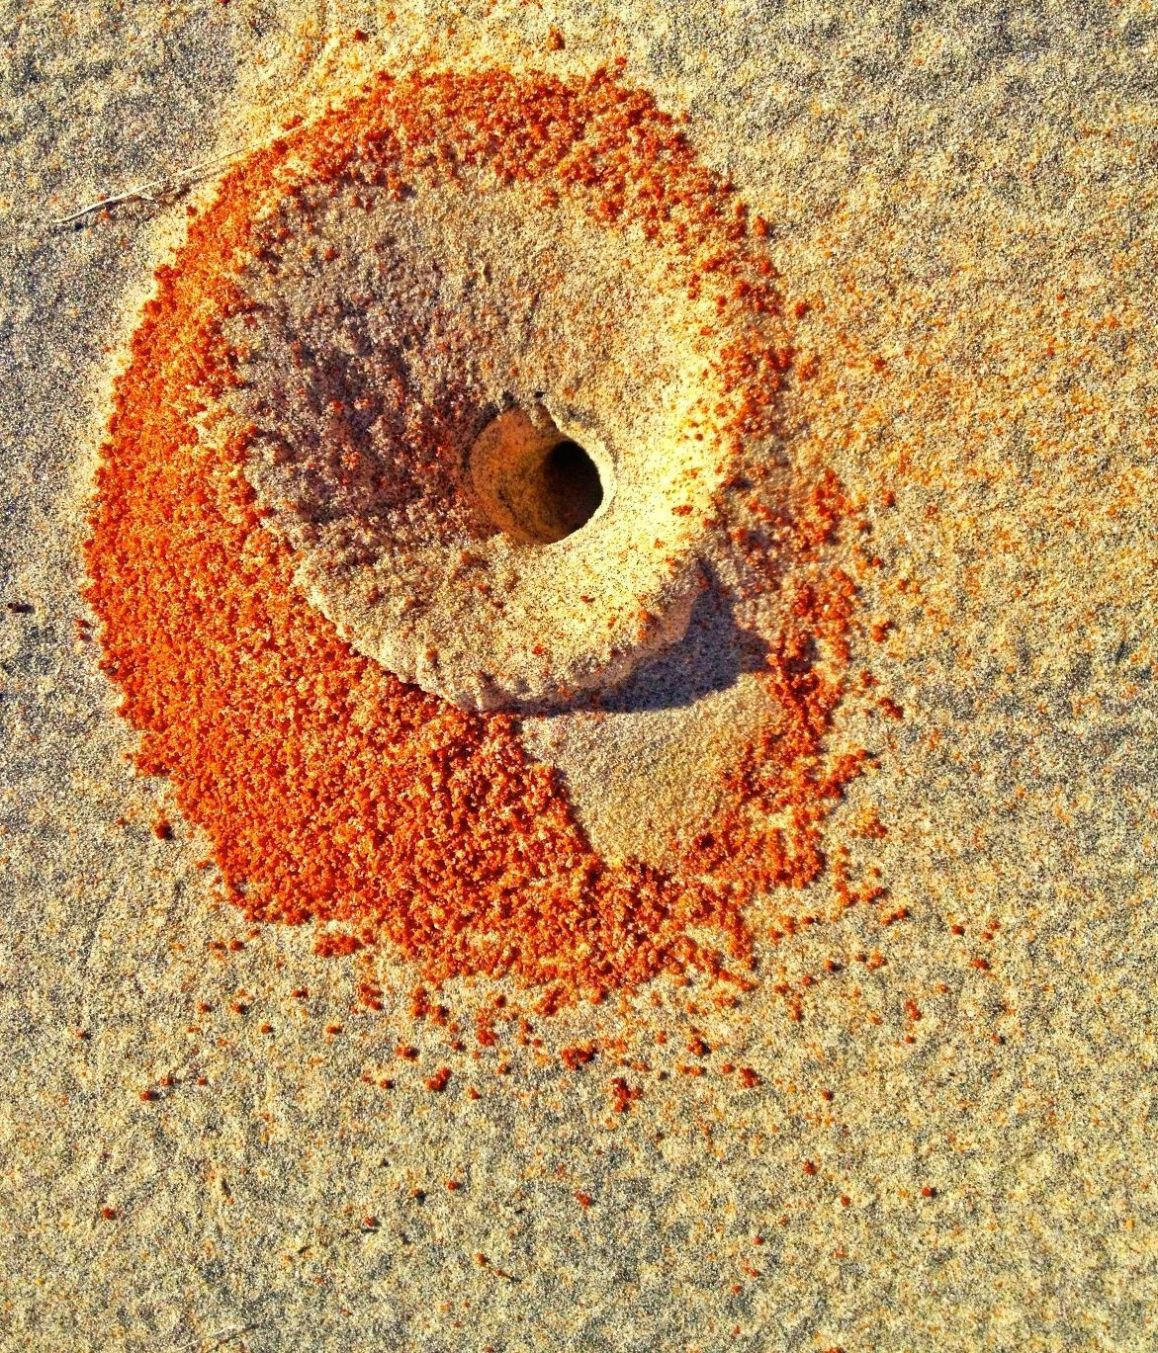 ant-hole-red-white-sand